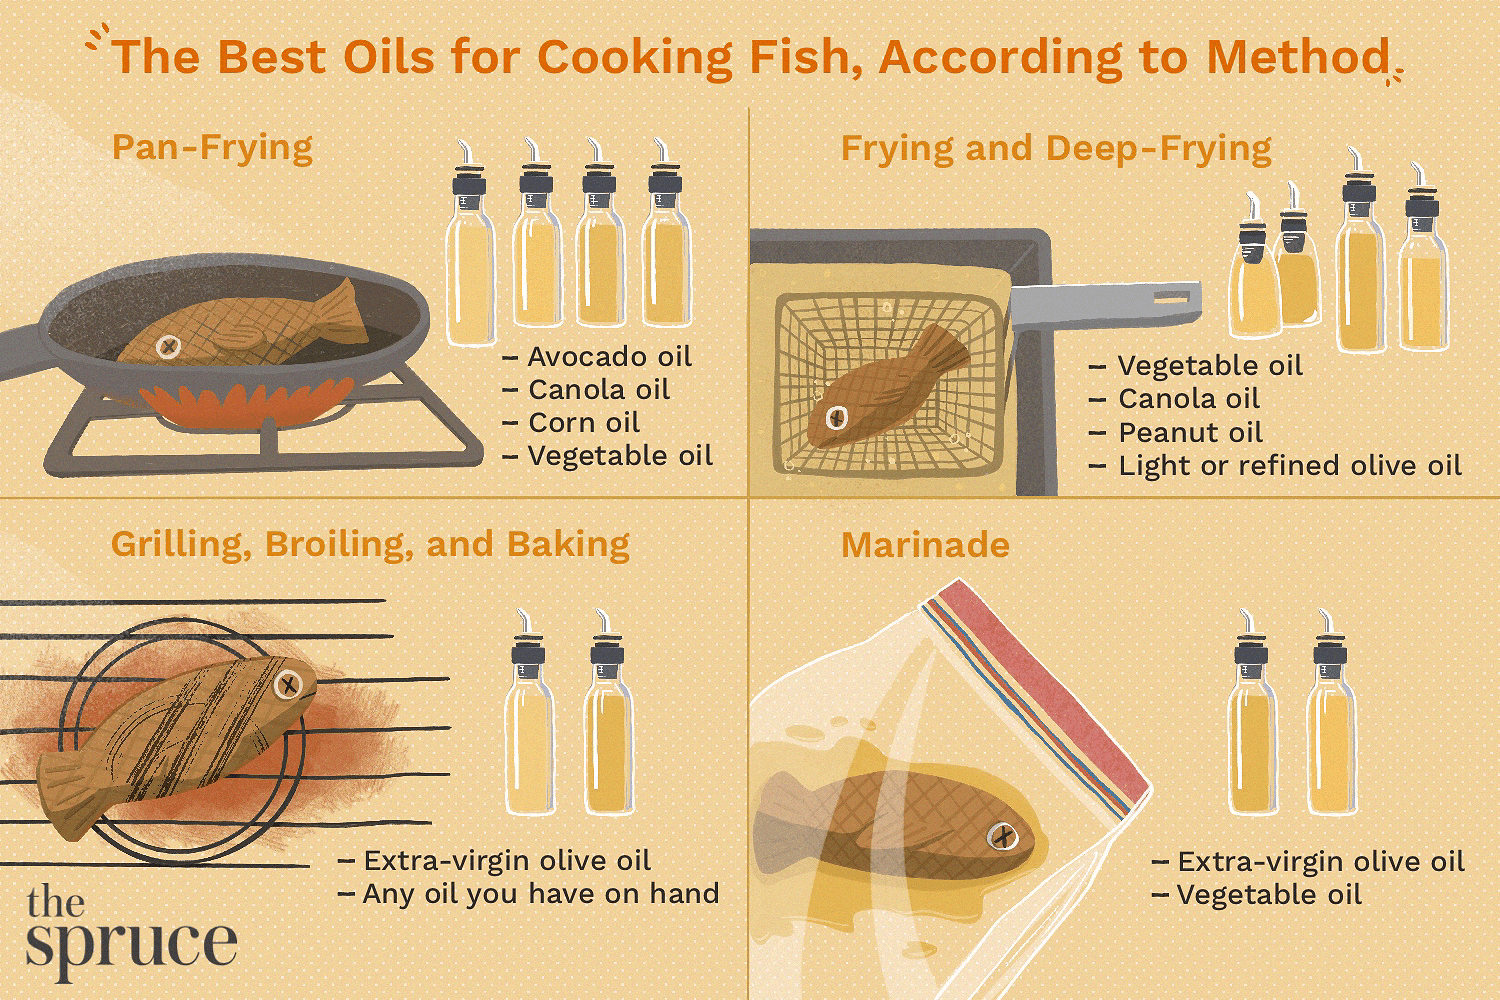 illustration showing best oils for cooking fish using different methods